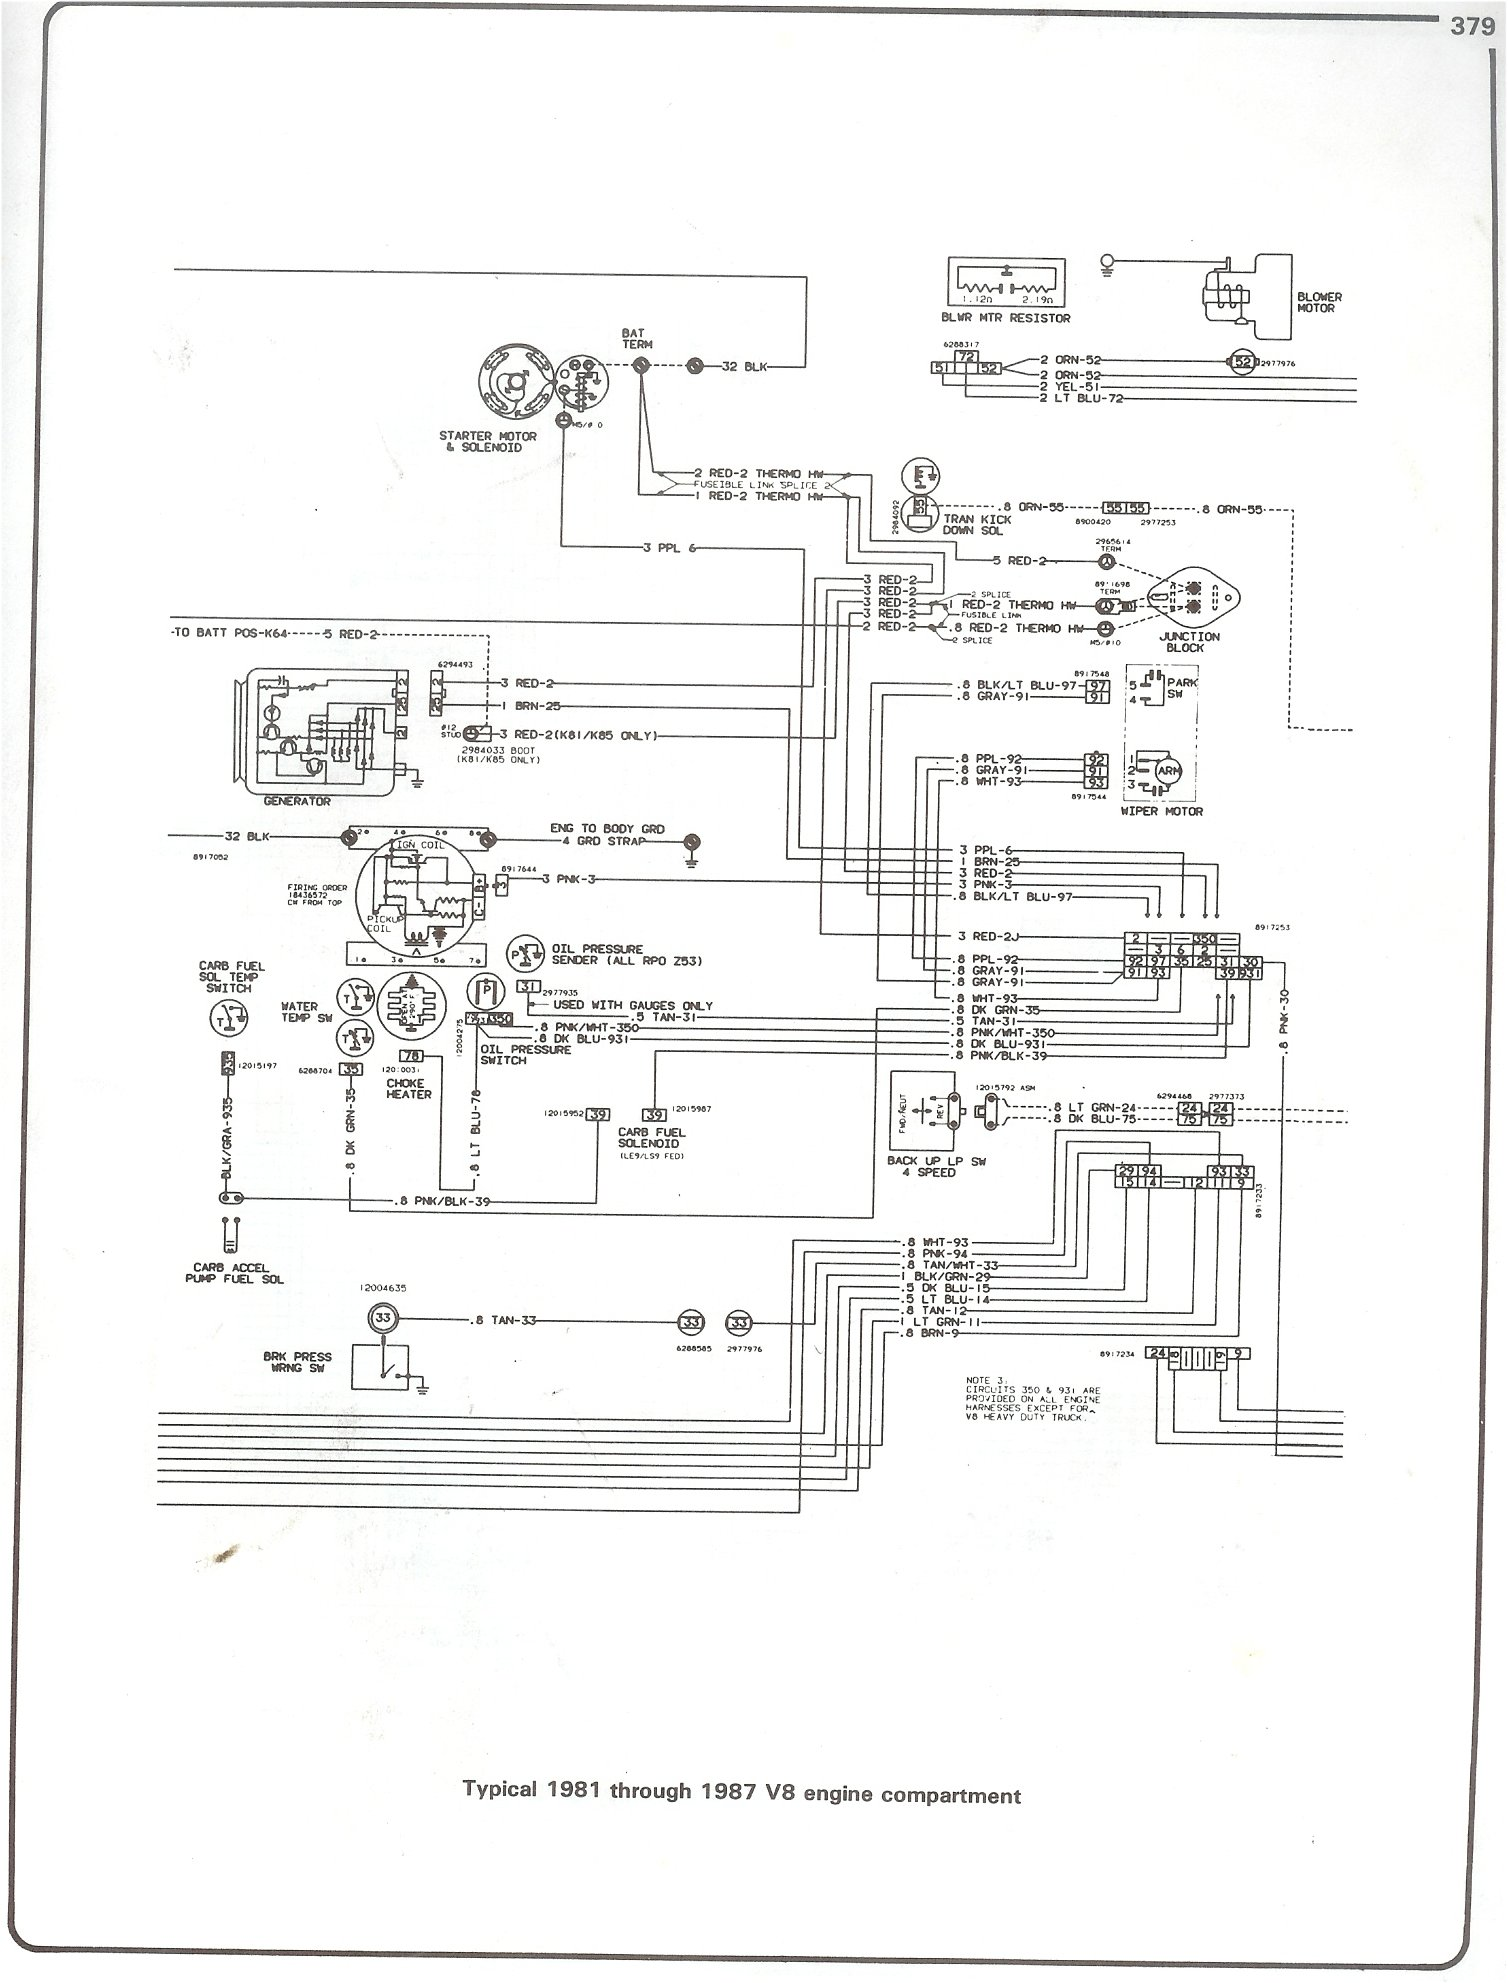 complete 73 87 wiring diagrams rh forum 73 87chevytrucks com chevy radio wiring diagrams 2003 Chevy Trailblazer Radio Wiring Diagram